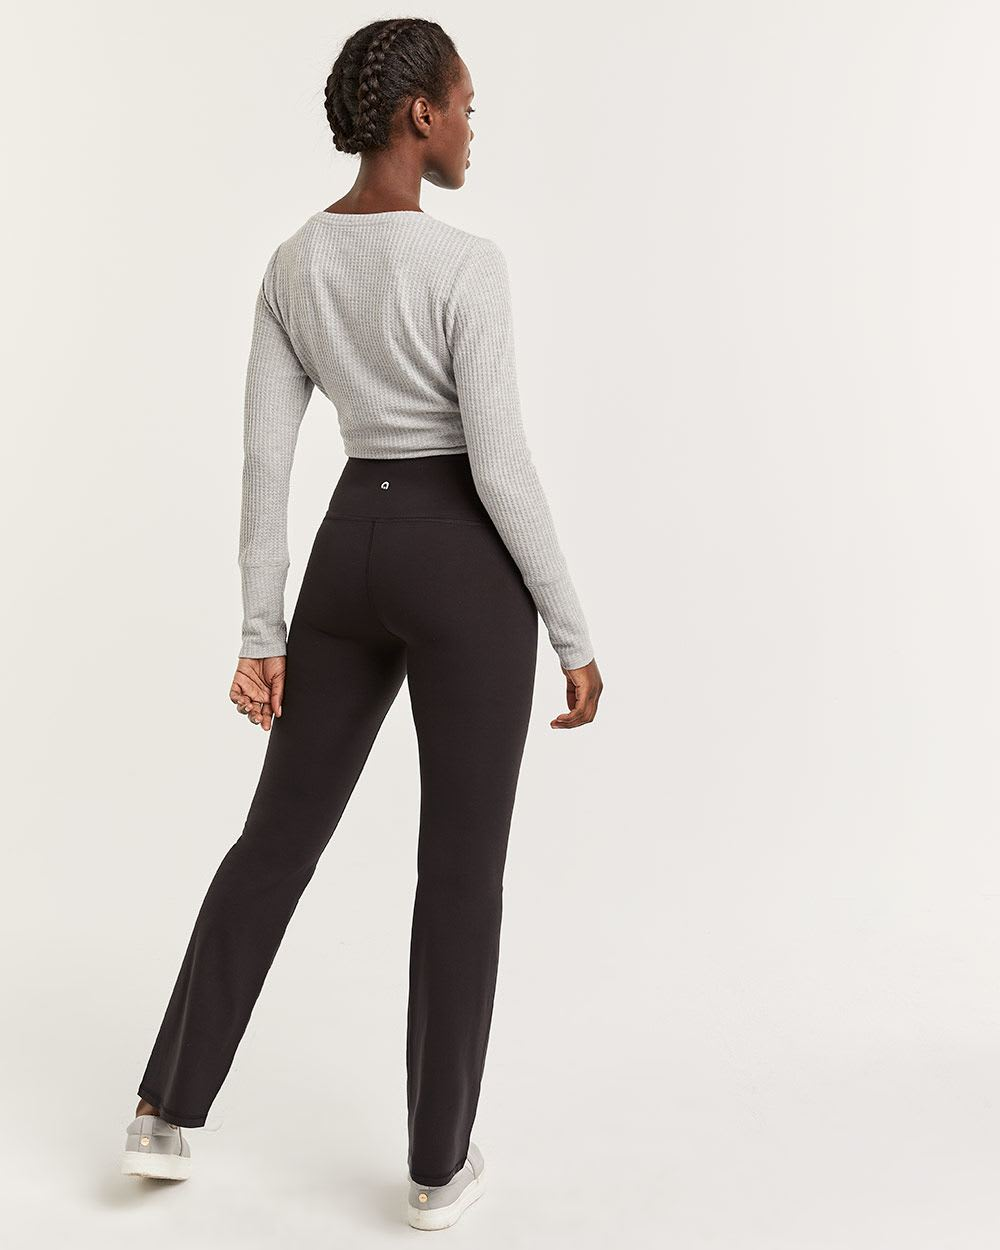 Hyba Black Namaste Yoga Flared Pants